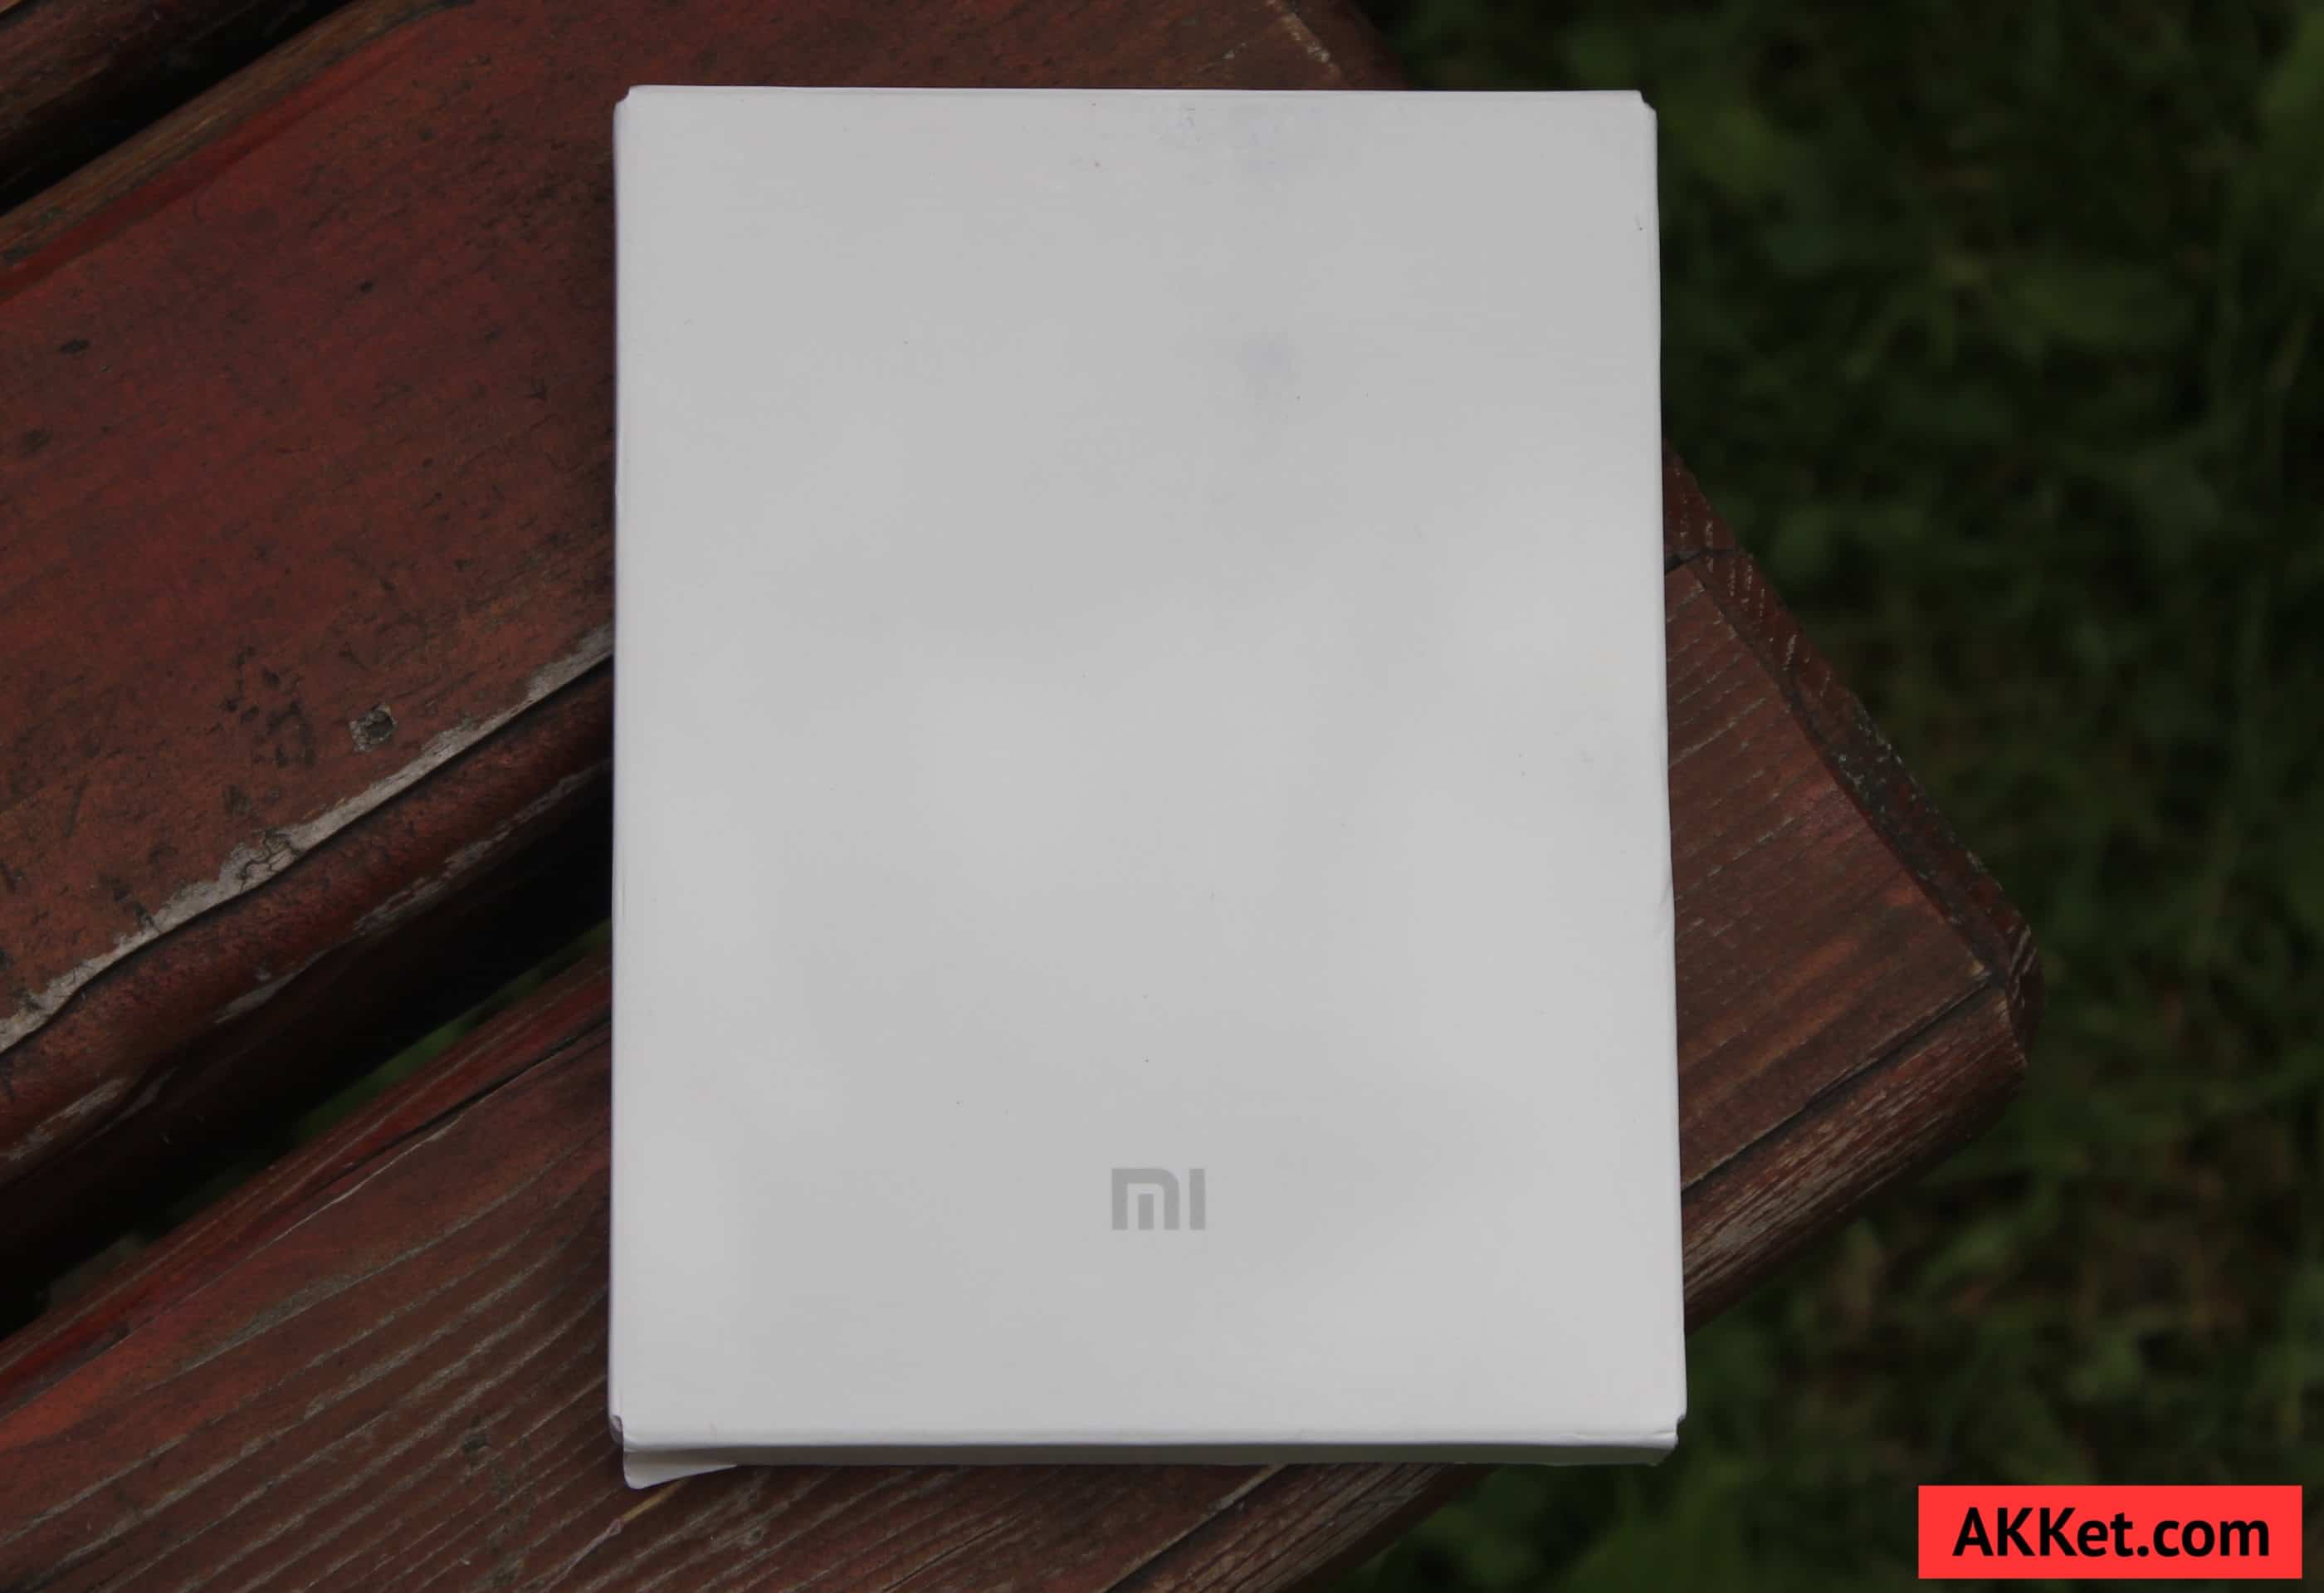 Xiaomi Mi Power Bank Pro 10000 мАч review photo 3